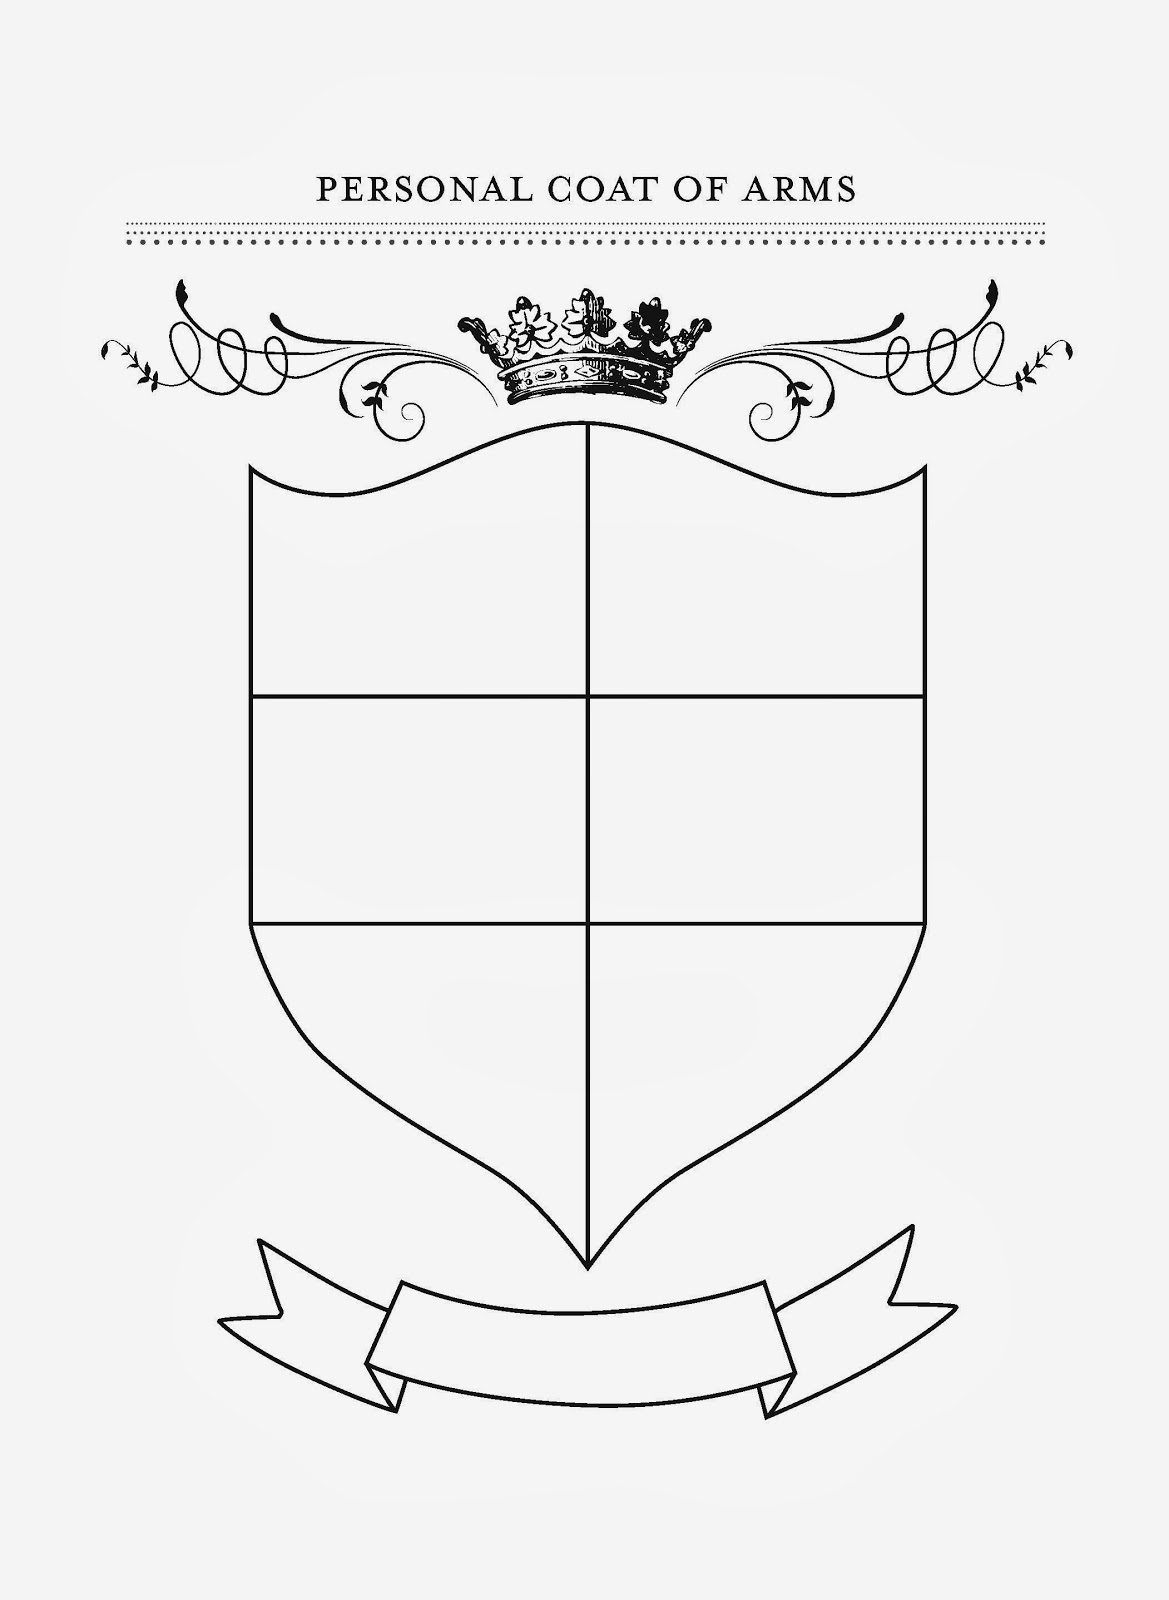 Remarkable image intended for coat of arms template printable free